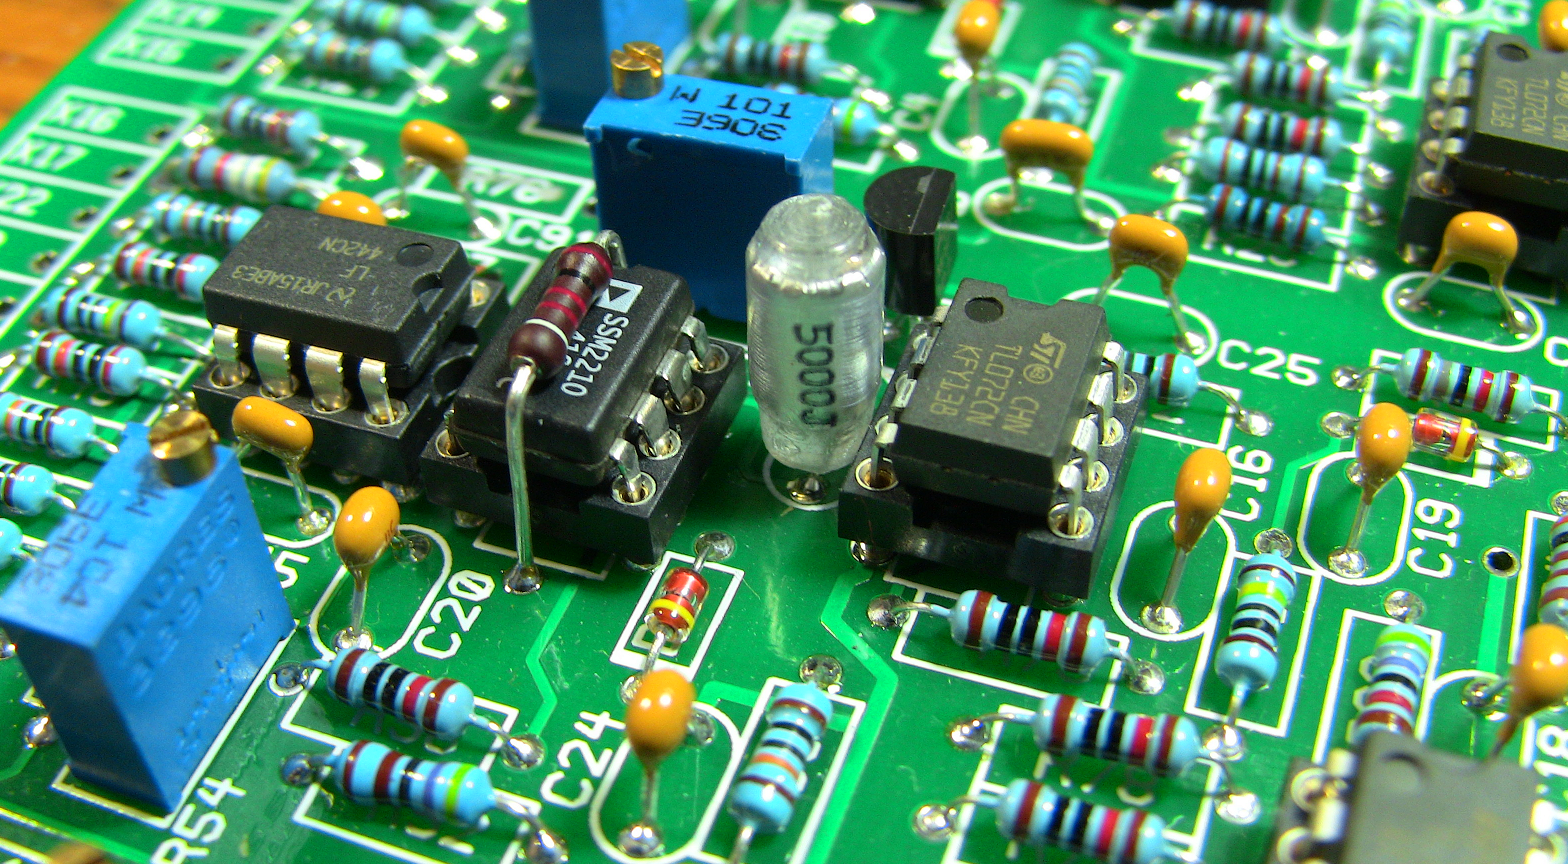 Diy Hub Dynamo Usb Charger furthermore Ltcc3d moreover Pcb Layout Fundementals together with Pc Based Data Logger additionally Pcb Layouts. on capacitors circuit board component